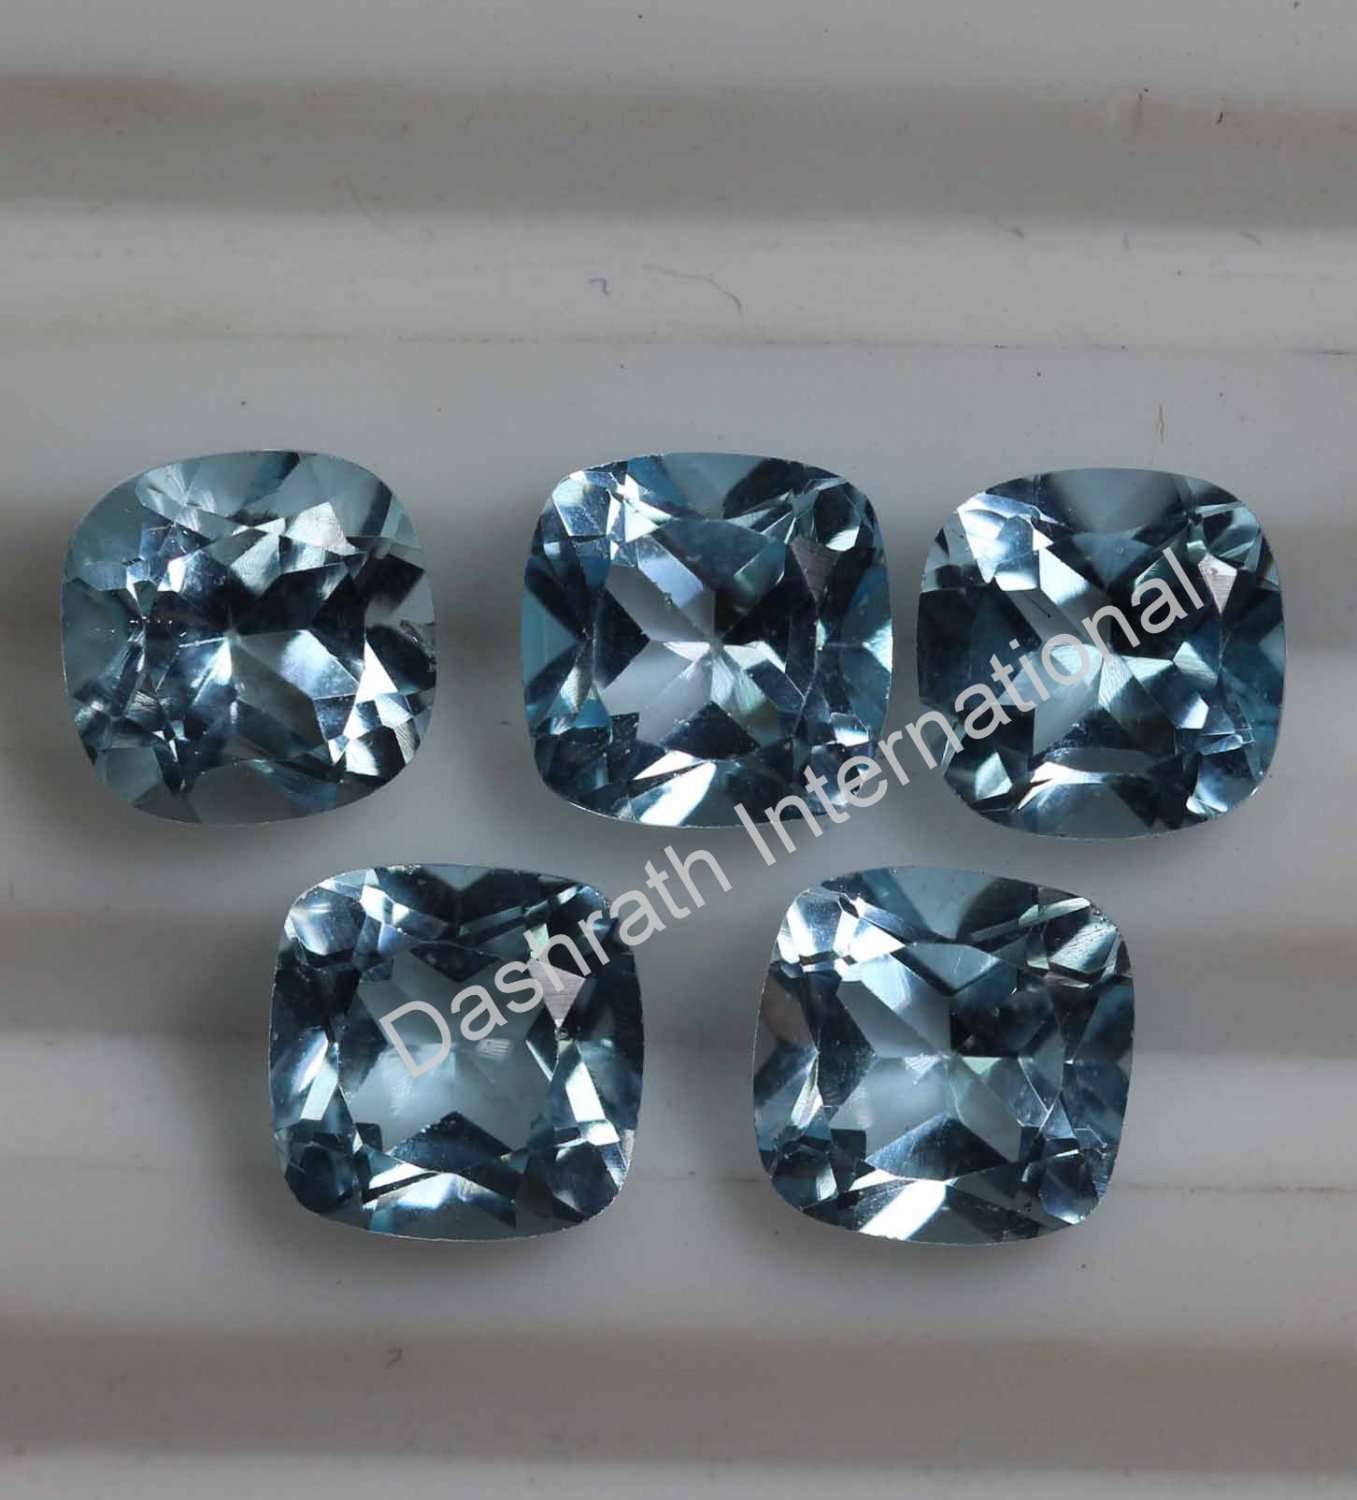 5mm Natural Sky Blue Topaz Faceted Cut Cushion 25 Pieces Lot Top Quality Loose Gemstone